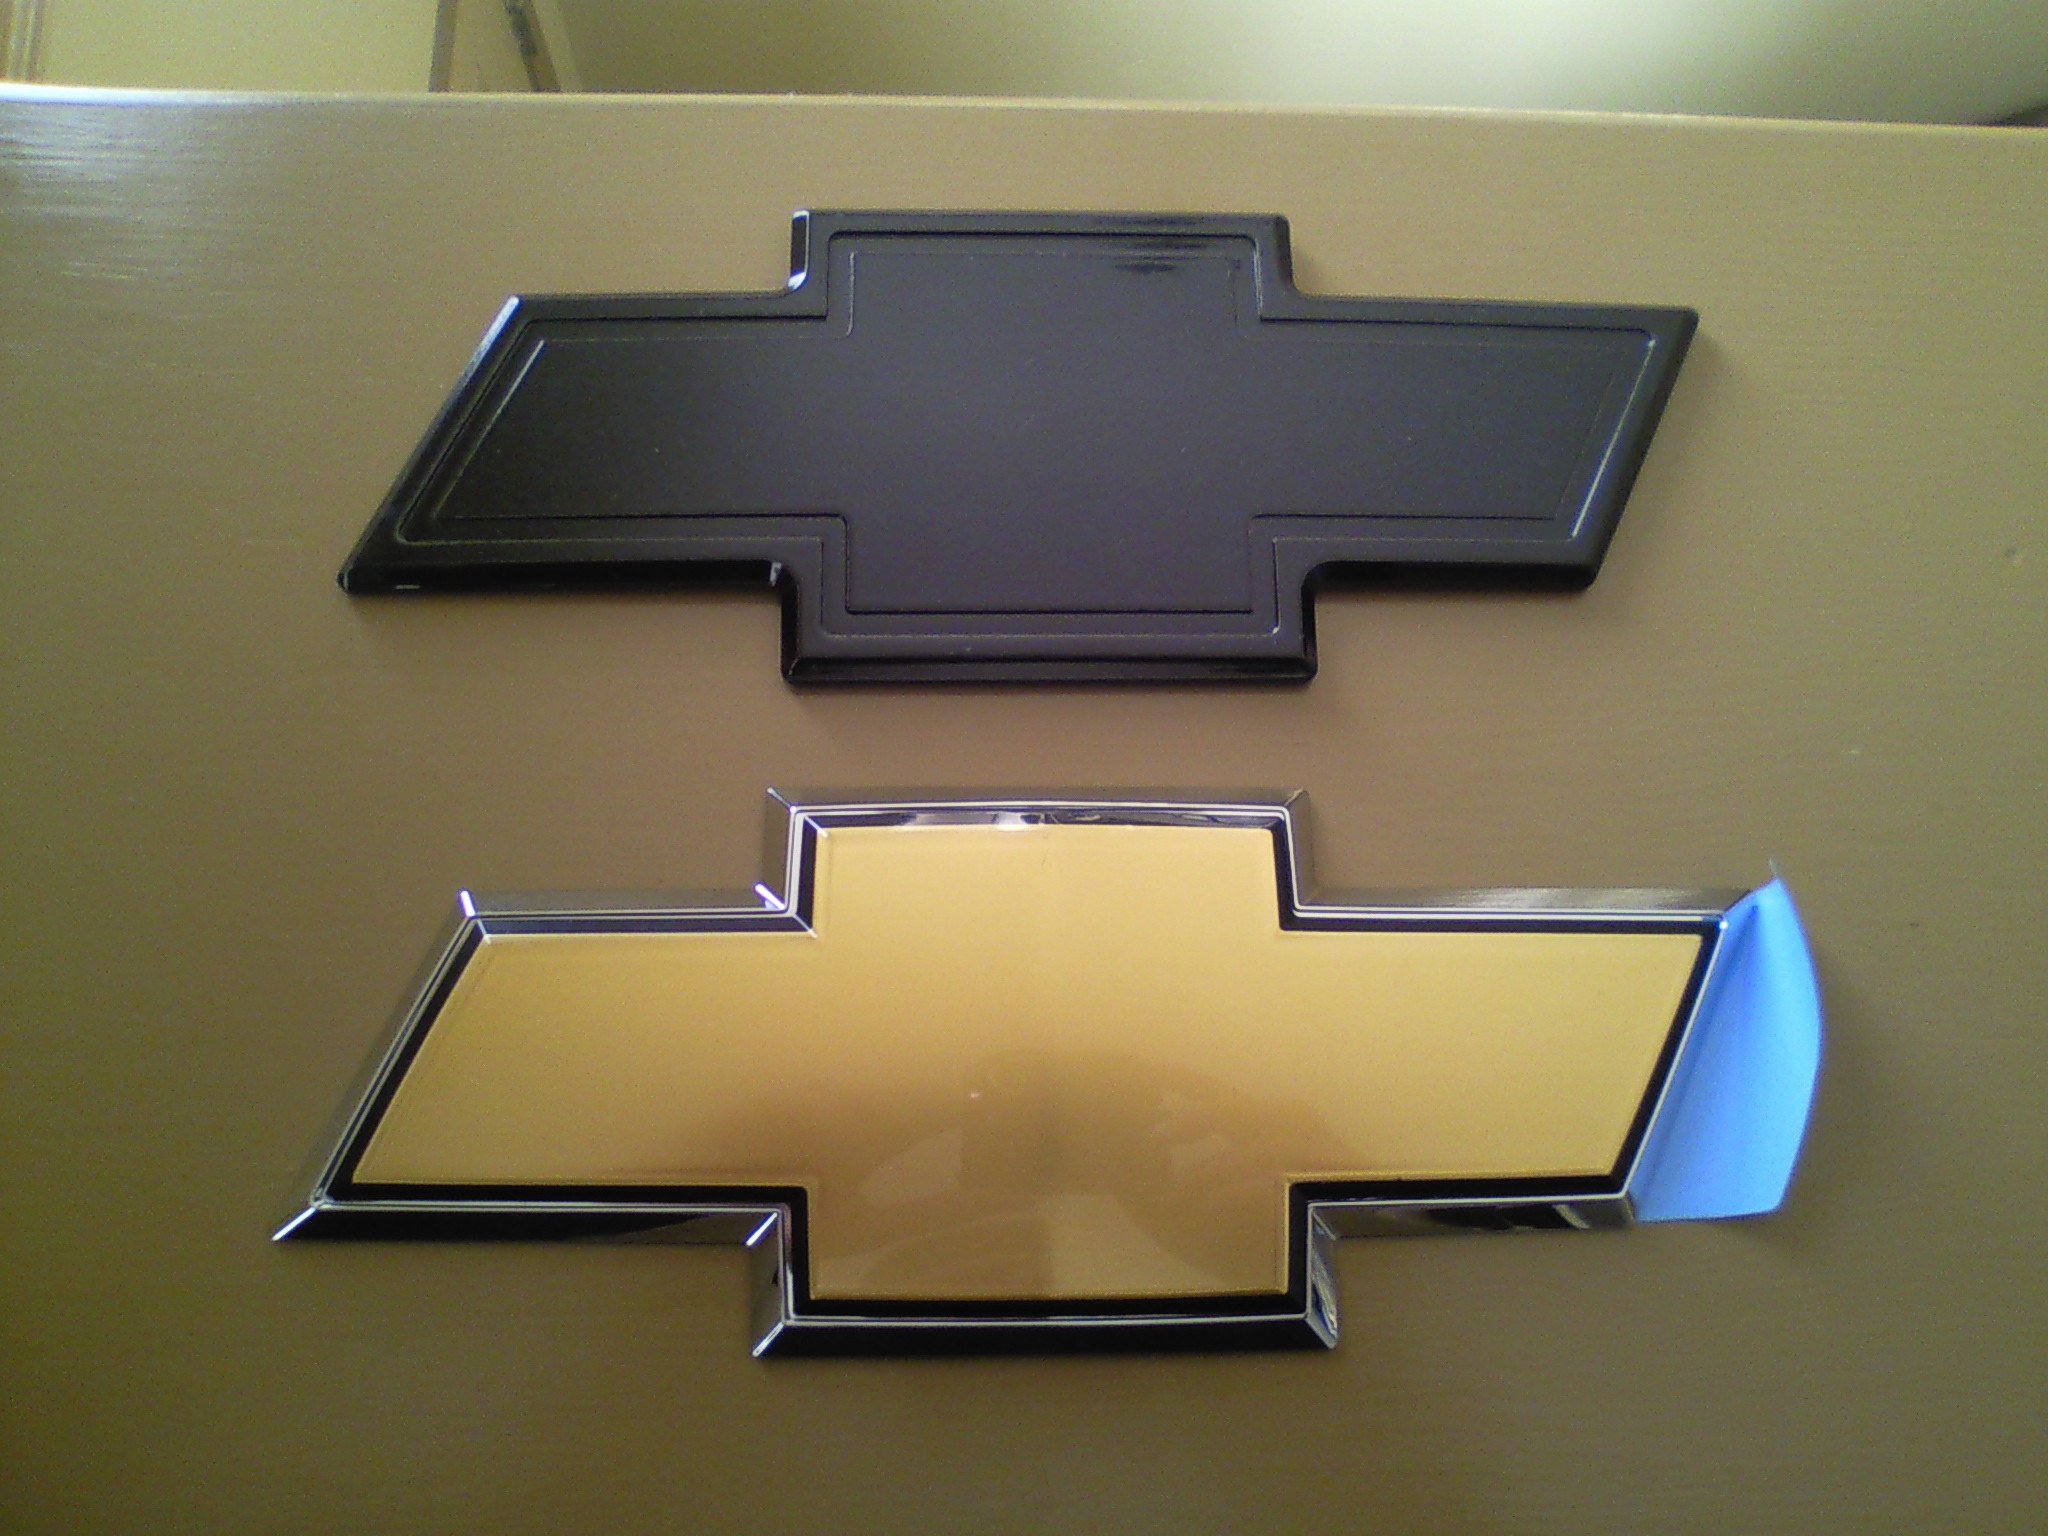 Res: 2048x1536, Chevy bowtie emblem - ViewBeforeBuying